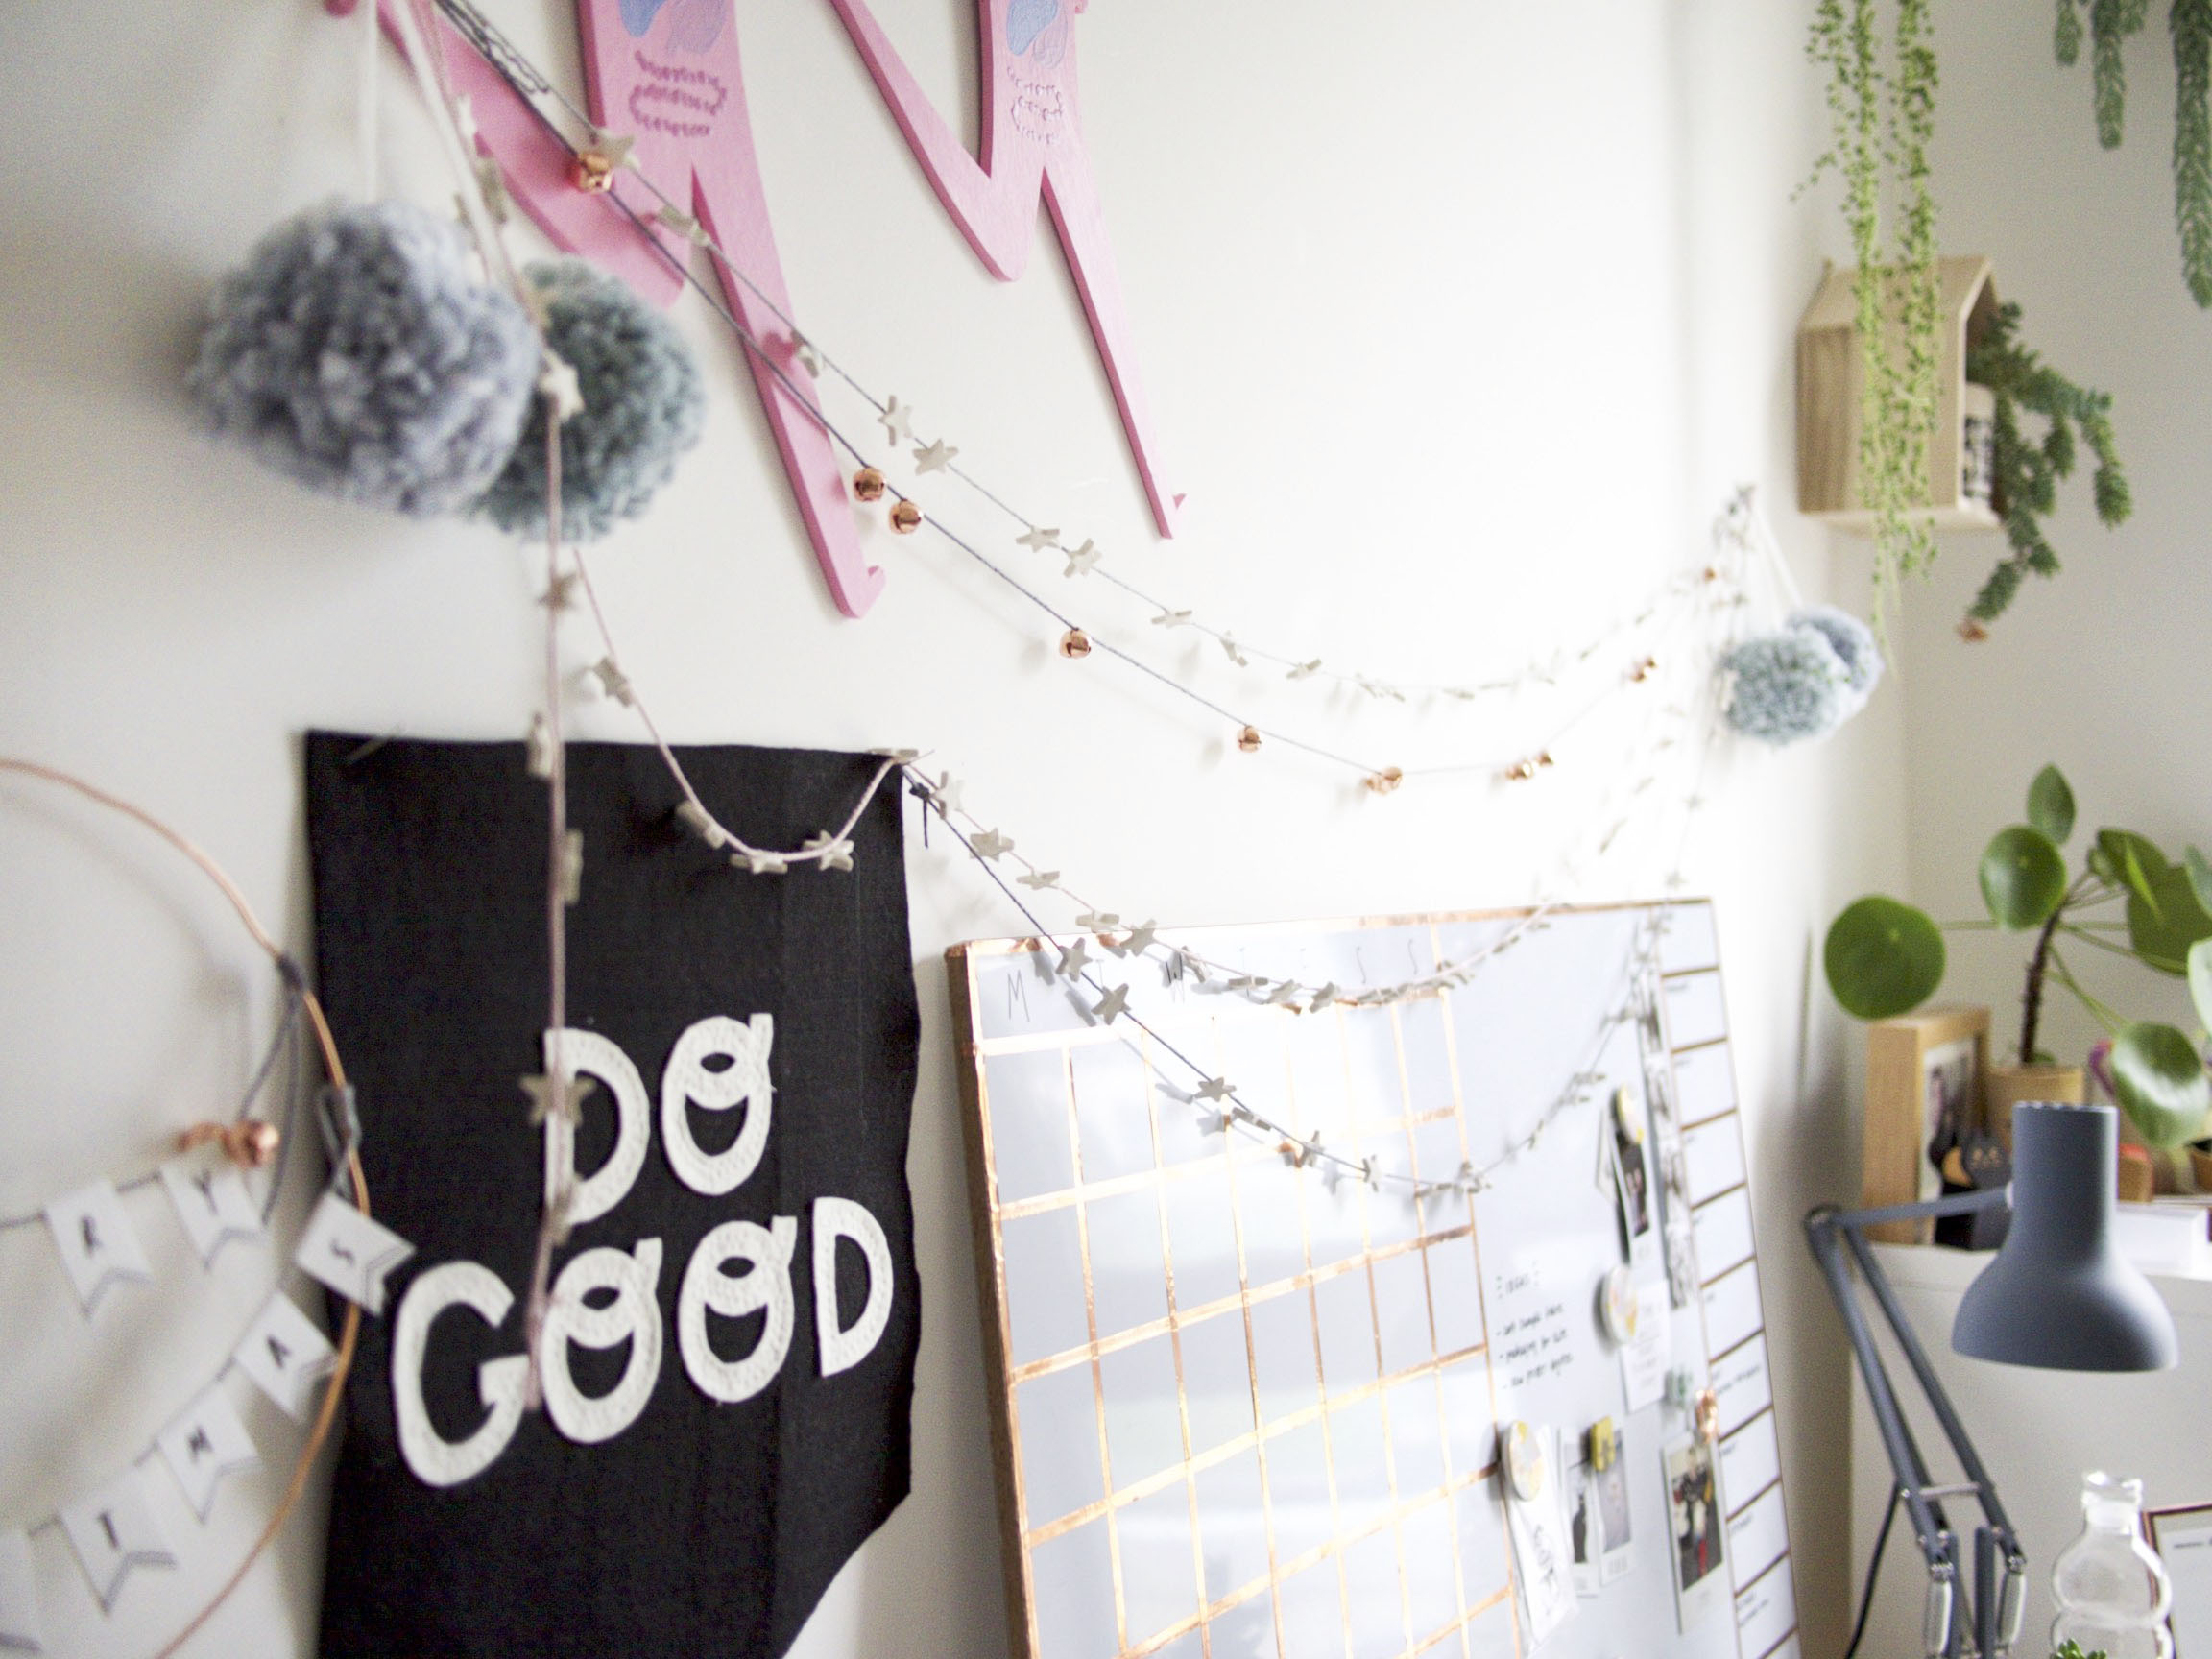 Cute little festive garlands by OH NO Rachio!